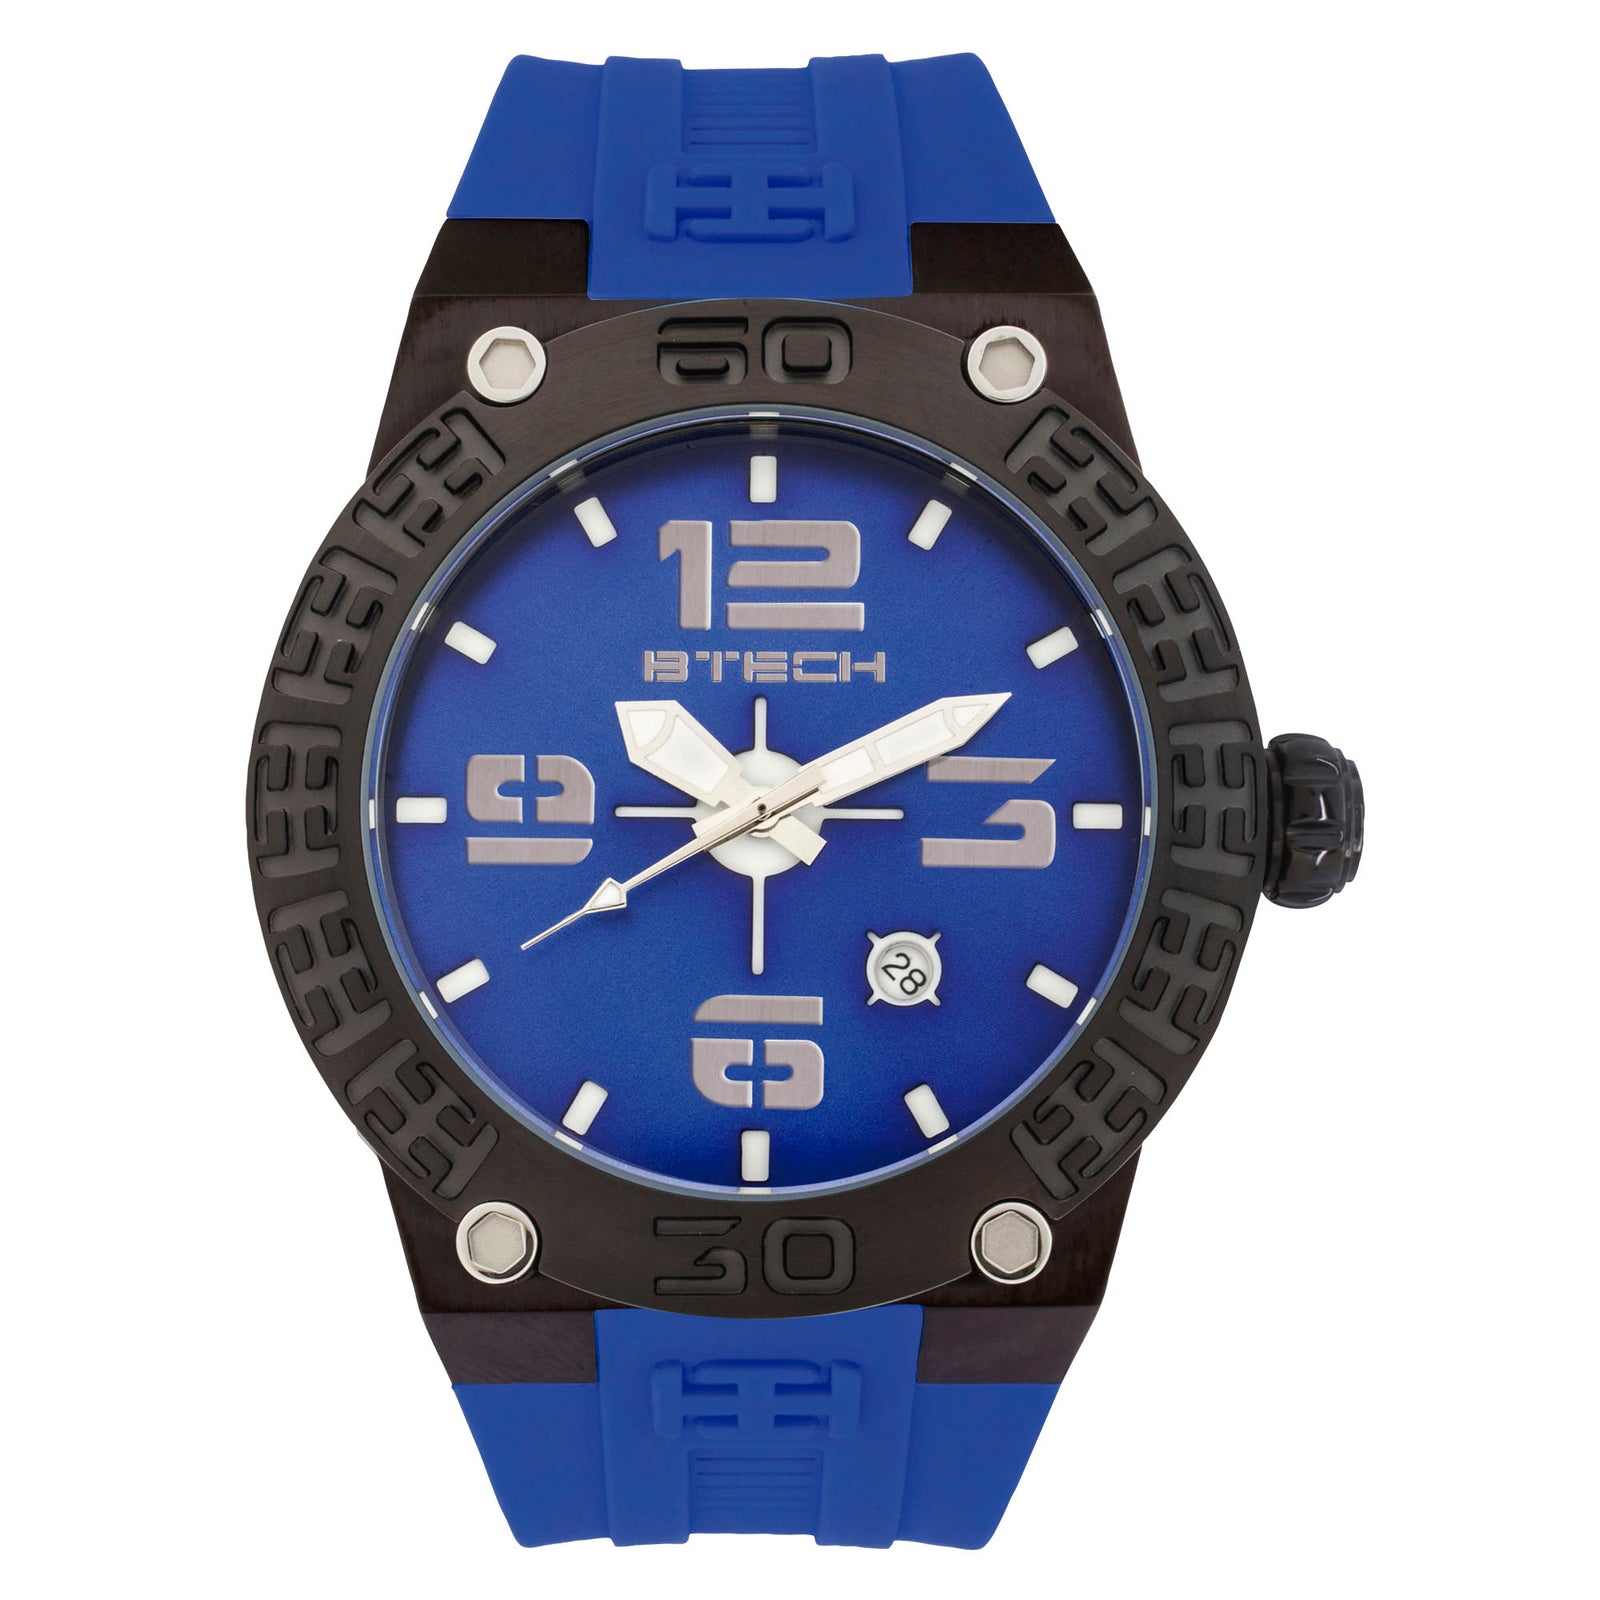 BTECH BT Blue Unisex Watch (BT-IB-222-04)